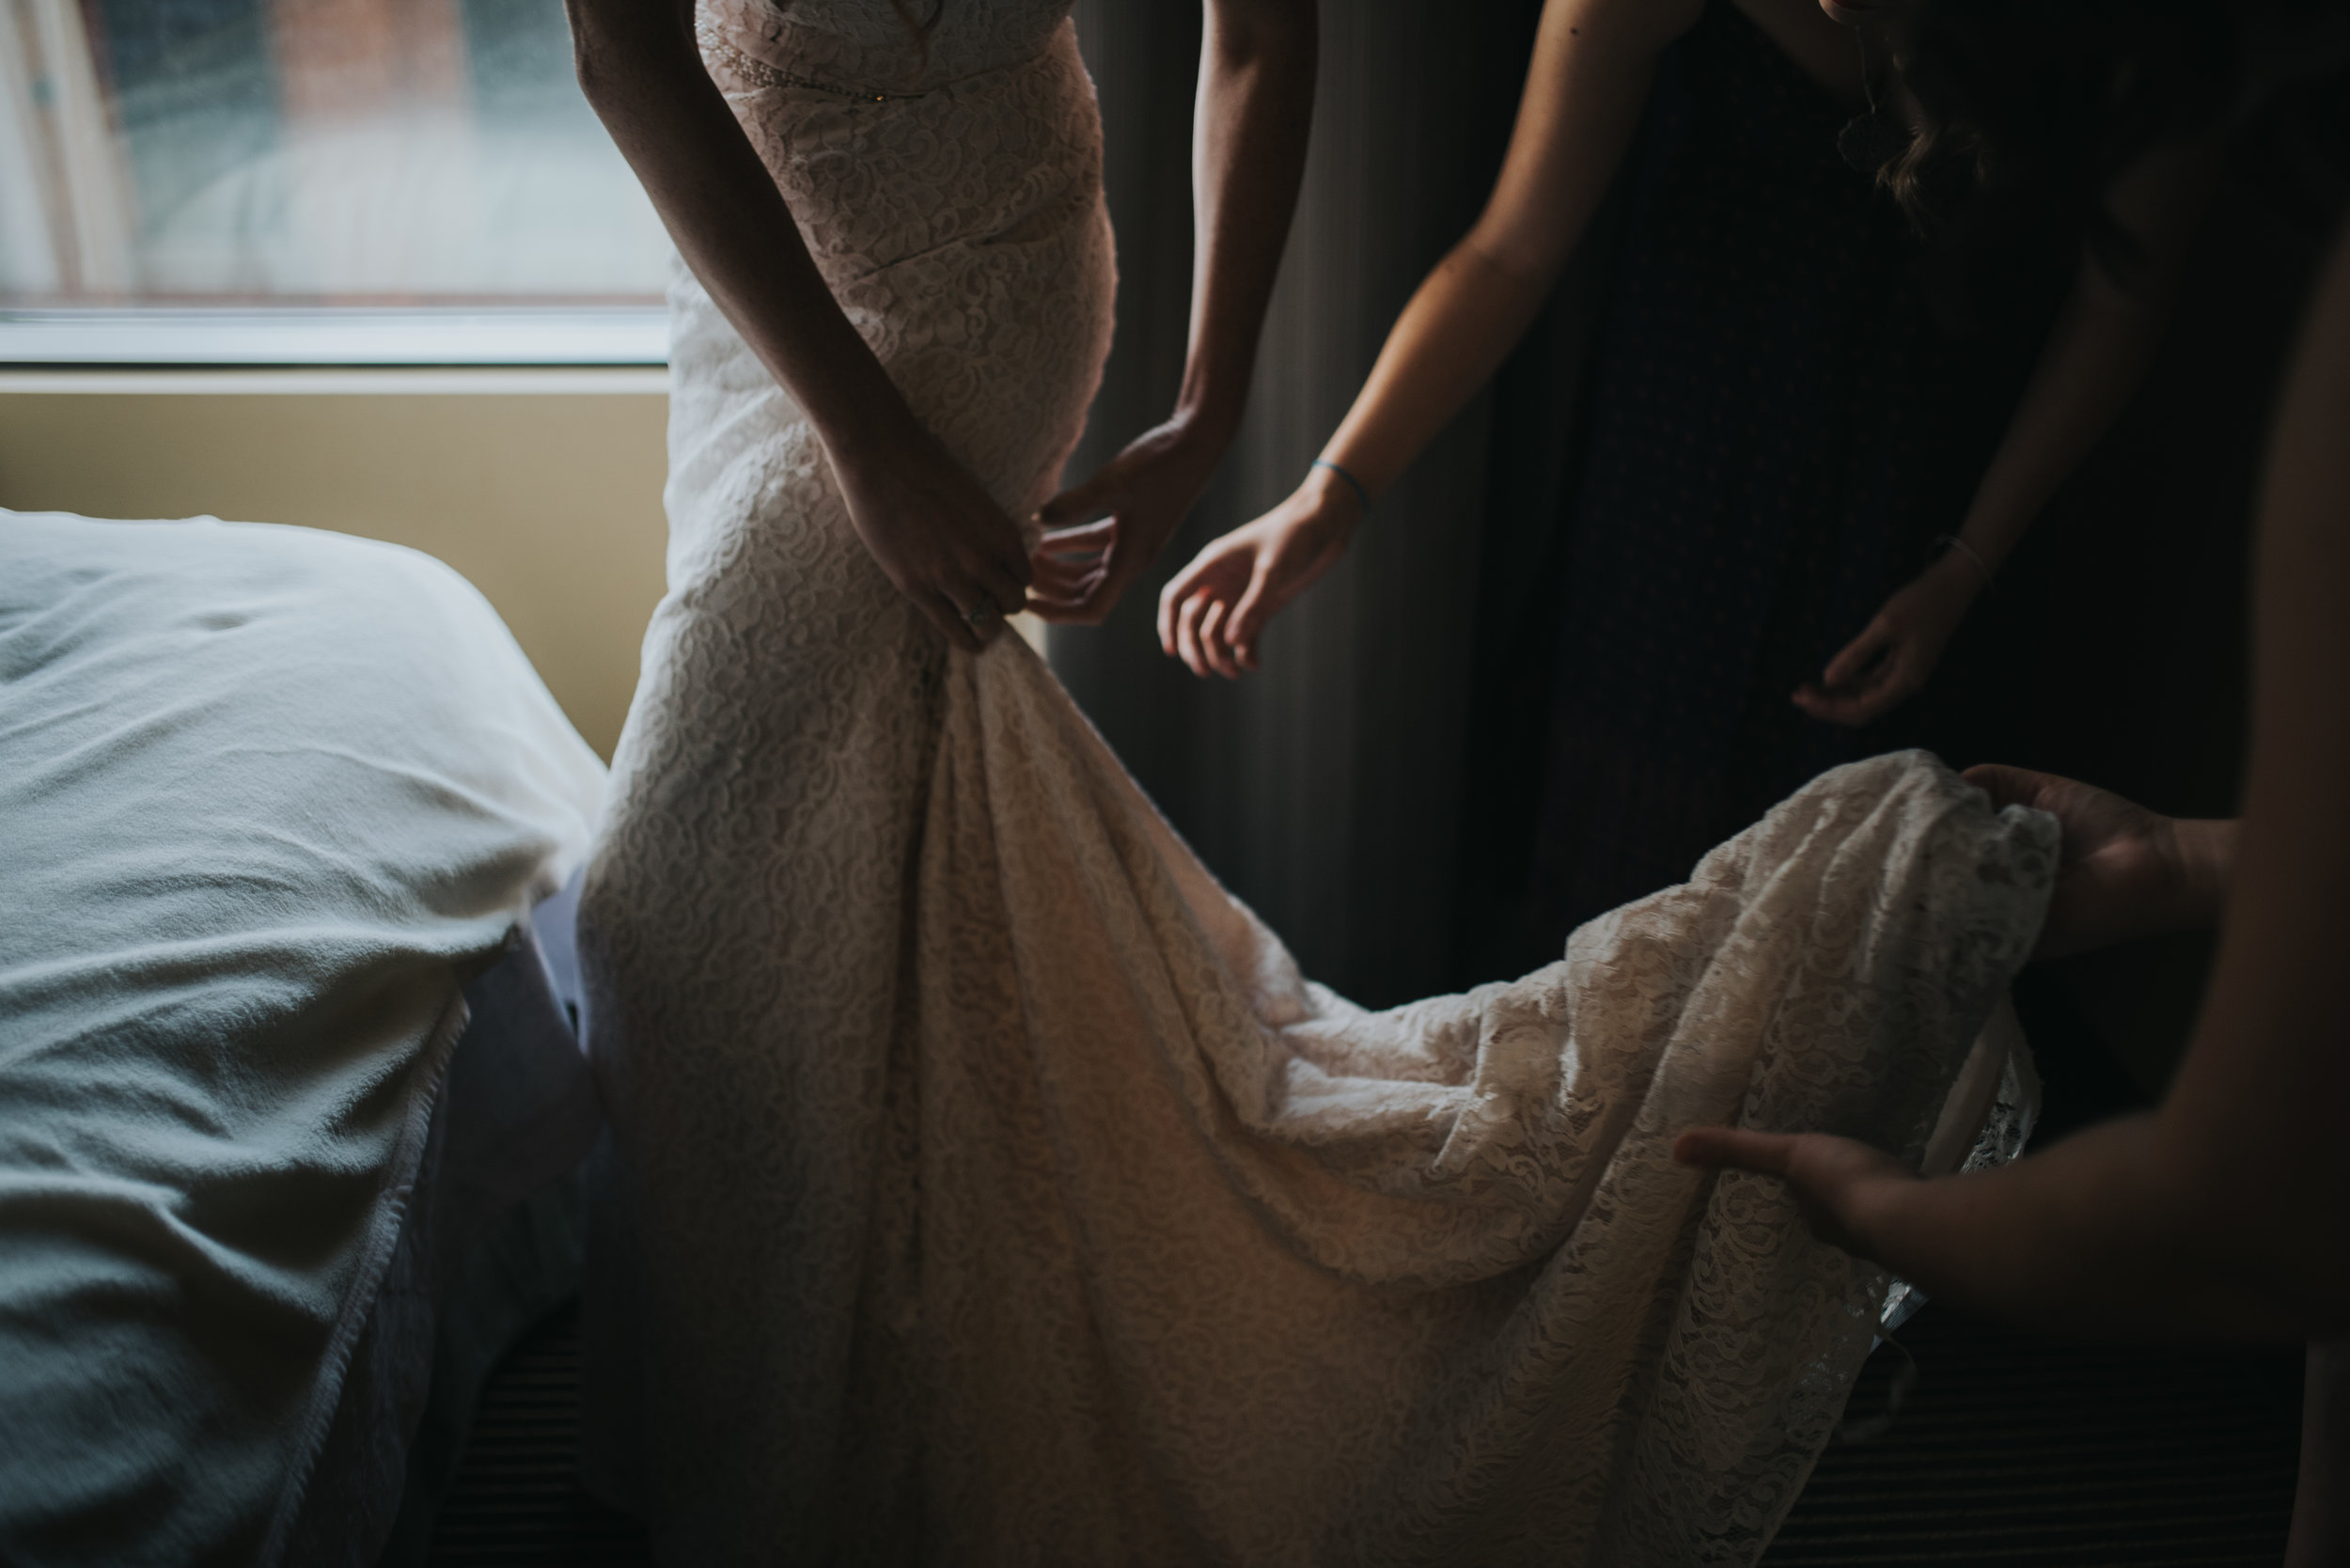 bride-getting-ready-wedding-dress-downtown-toronto-wedding-by-willow-birch.jpg